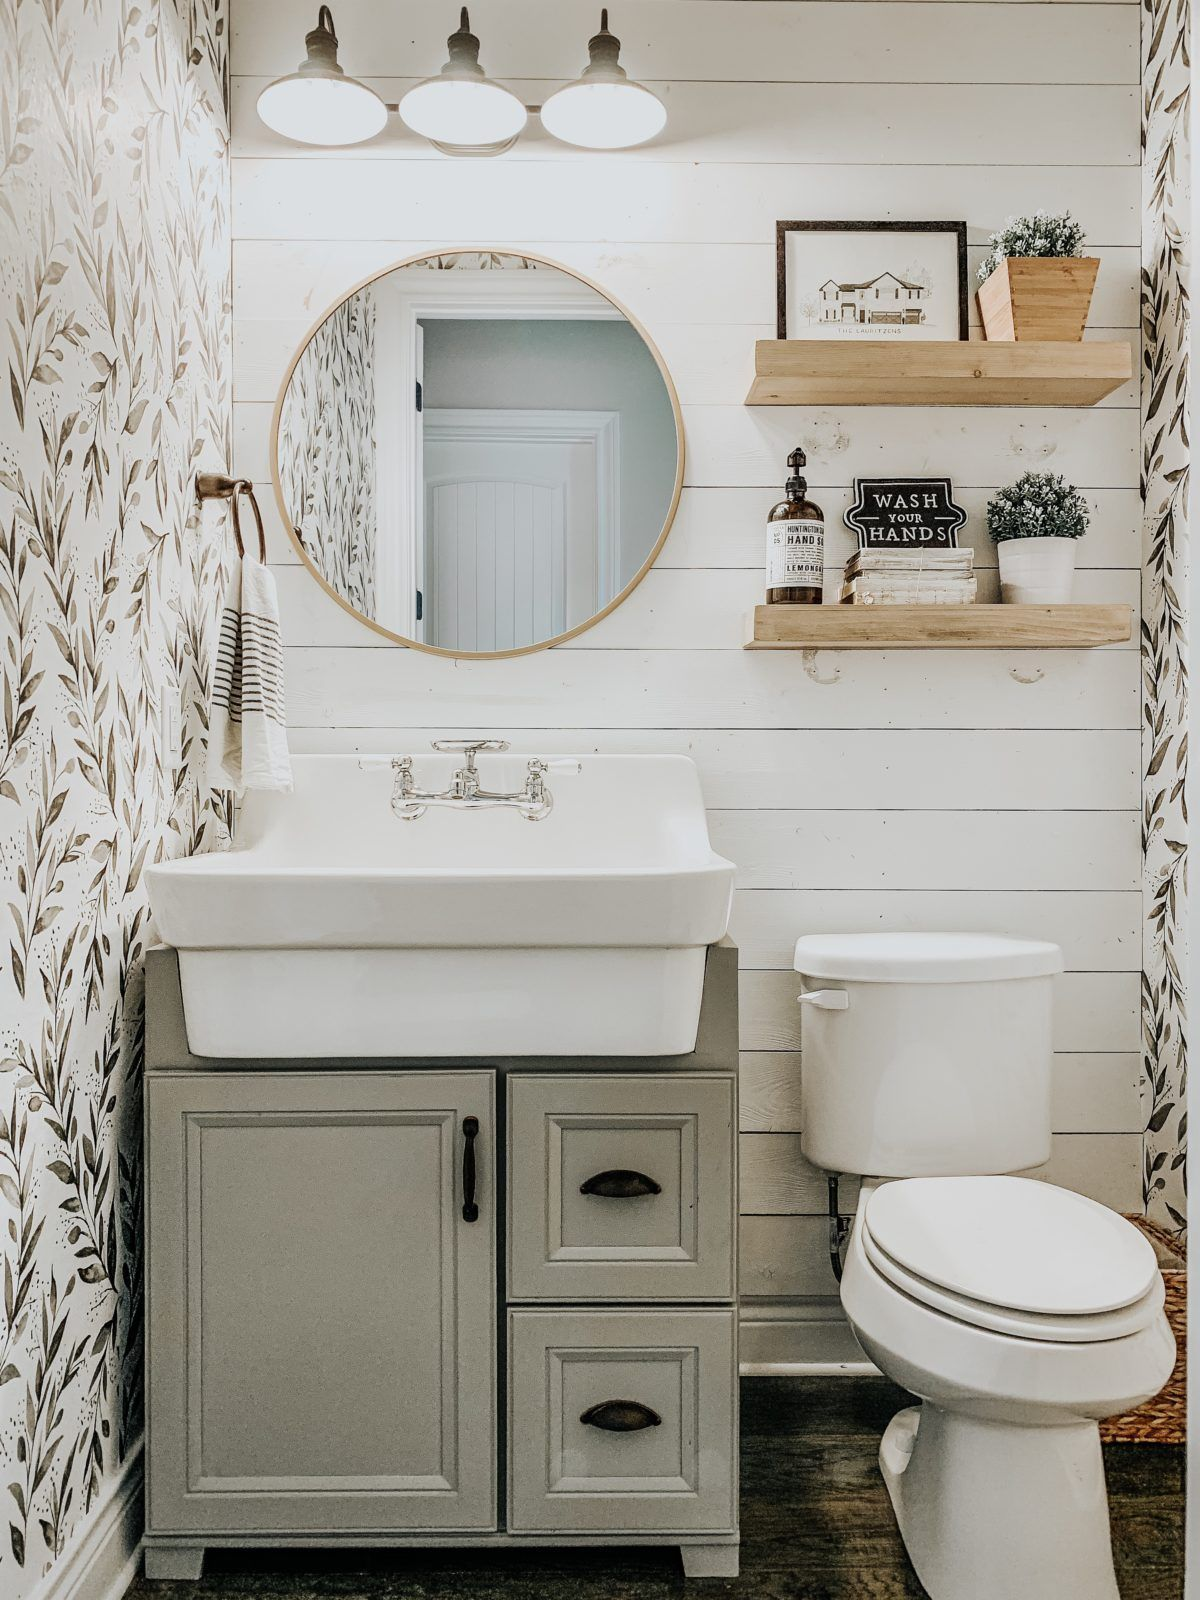 9 Farmhouse Bathrooms We're Obsessed With - City Girl Gone Mom